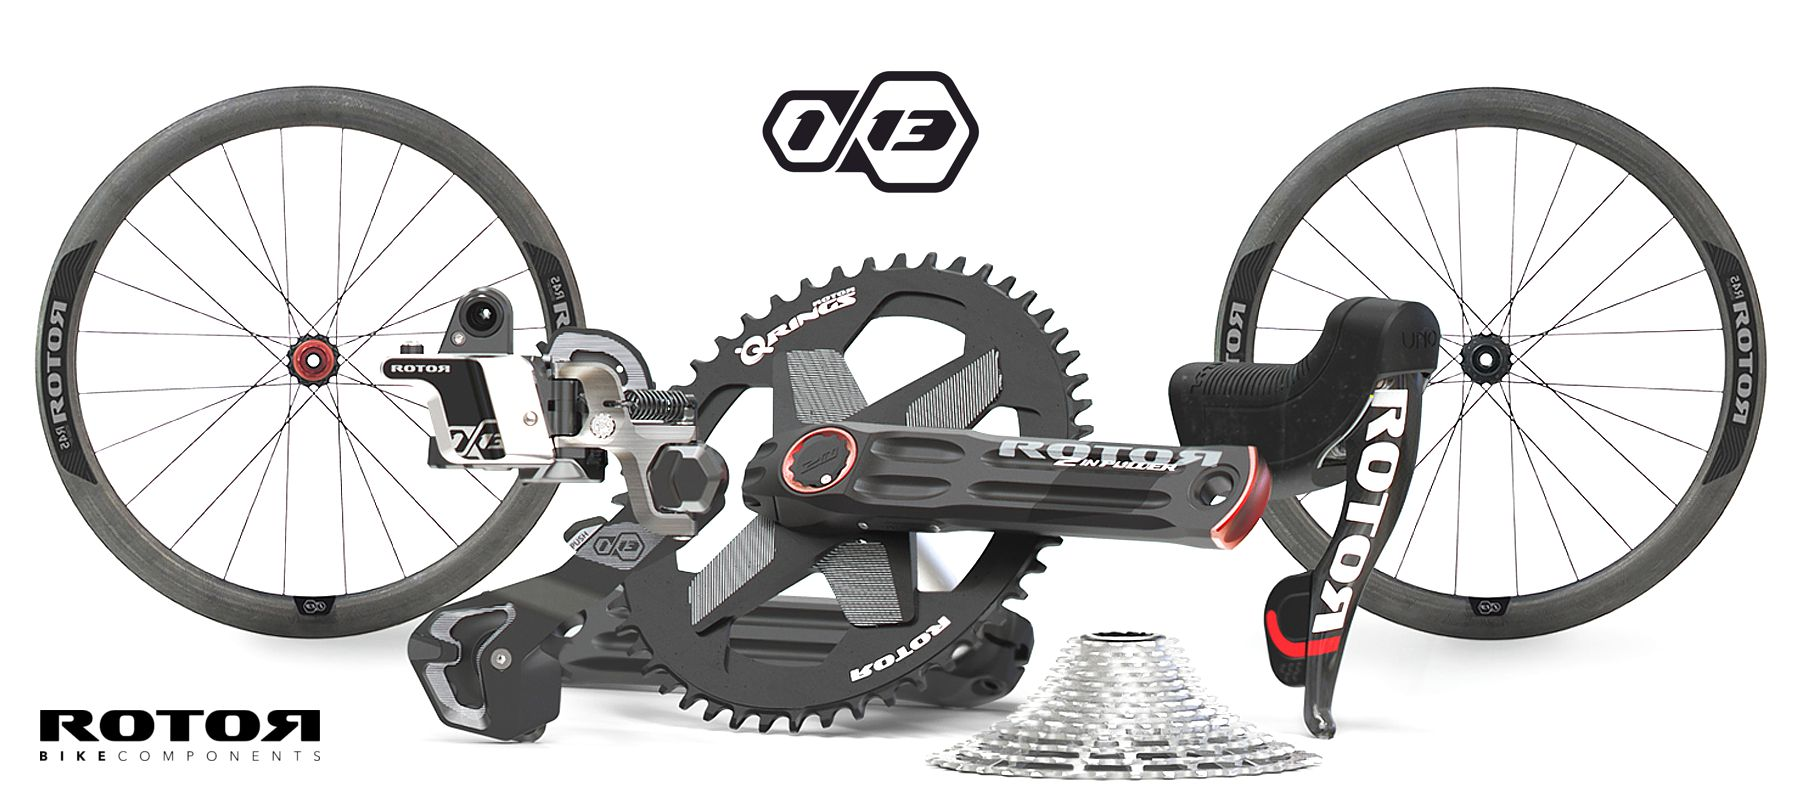 ROTOR 1x13 ROAD Bundle